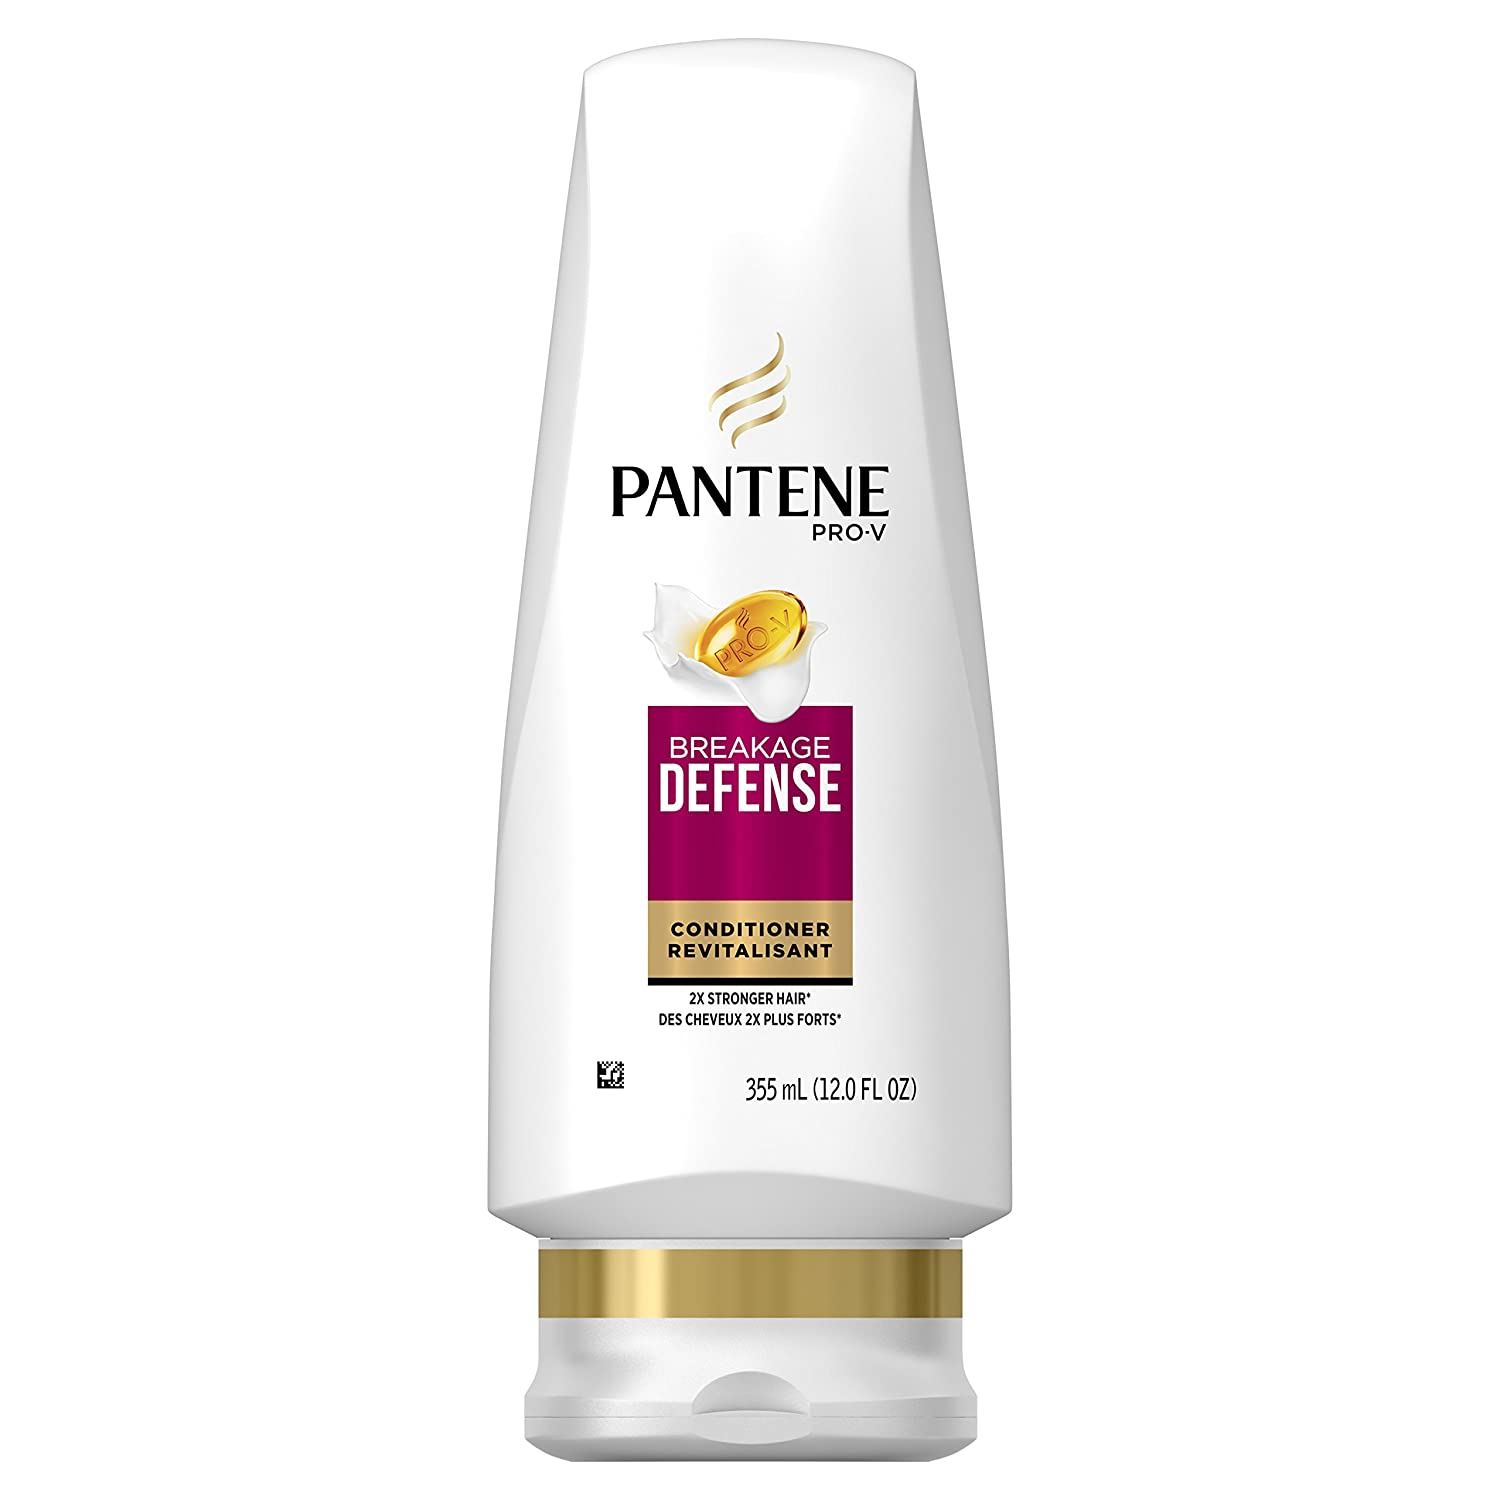 Pantene Pro-V Breakage Defense Shampoo, 375 mL, packaging may vary